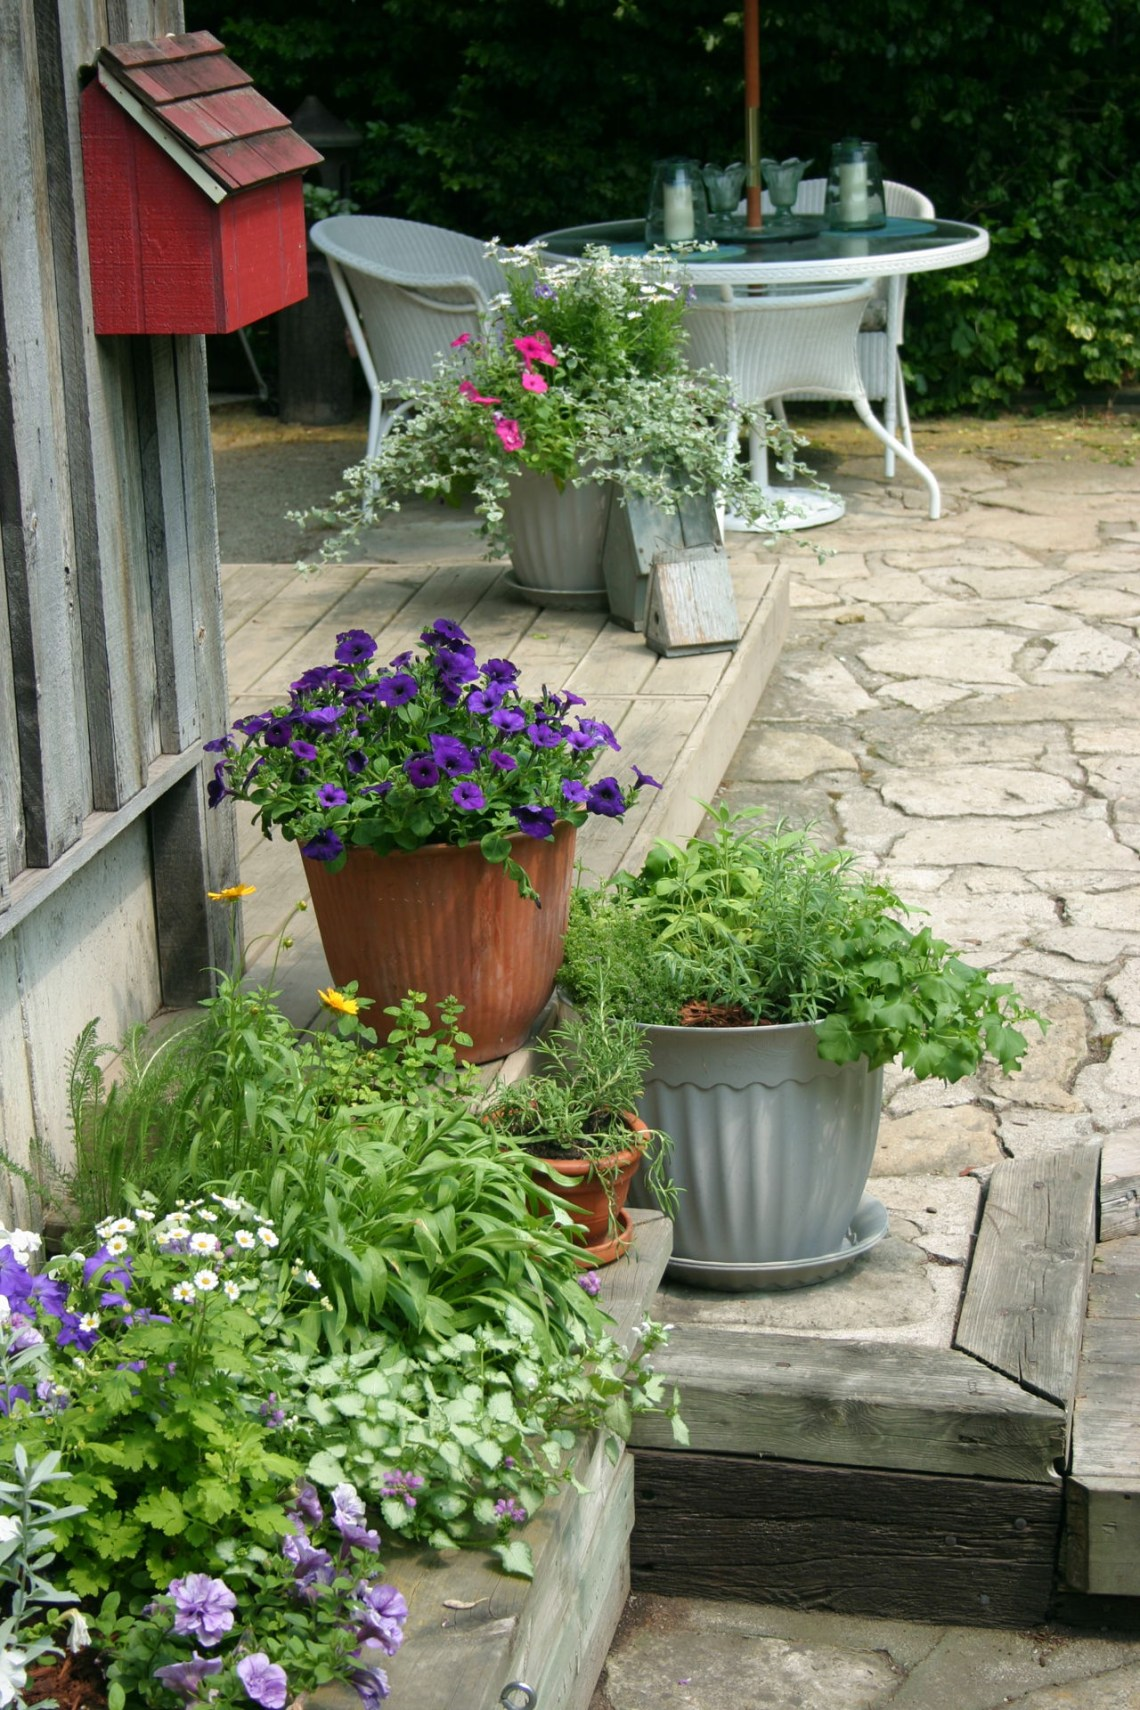 Fabulous And Innovative Ideas For Backyard Landscaping On A Budget Gardenerdy